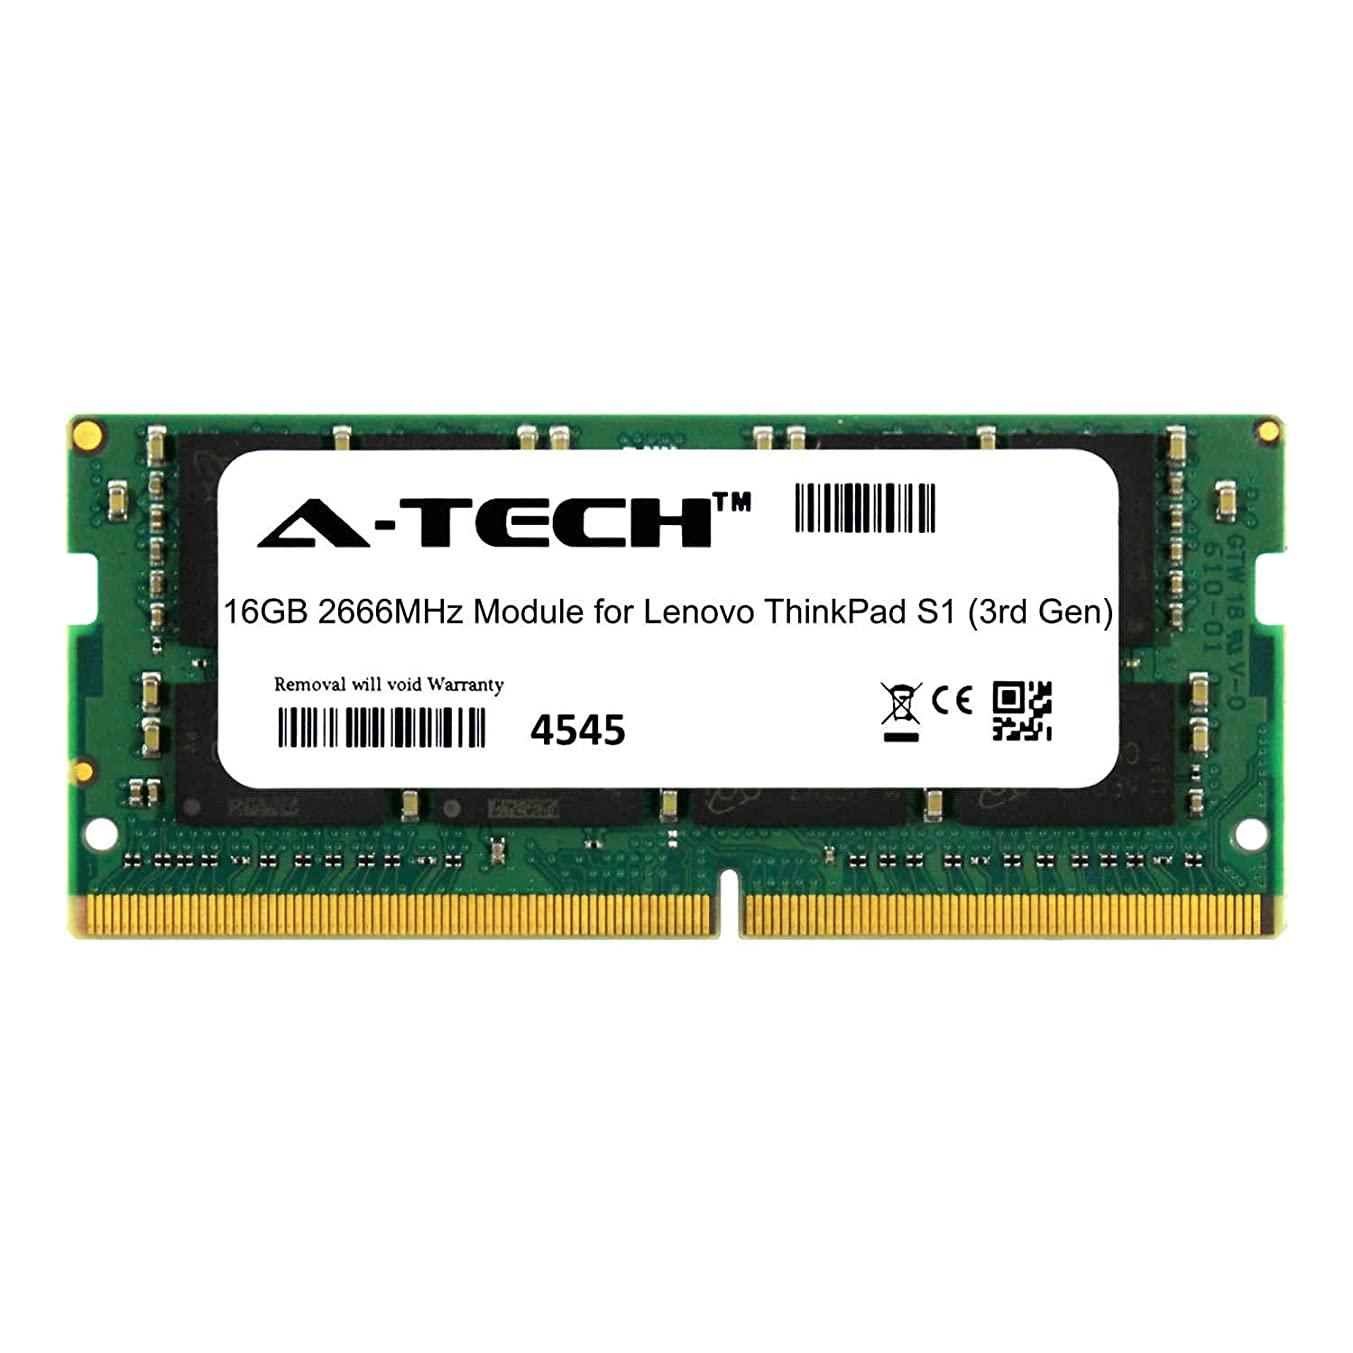 A-Tech 16GB Module for Lenovo ThinkPad S1 (3rd Gen) Laptop & Notebook Compatible DDR4 2666Mhz Memory Ram (ATMS350774A25832X1)